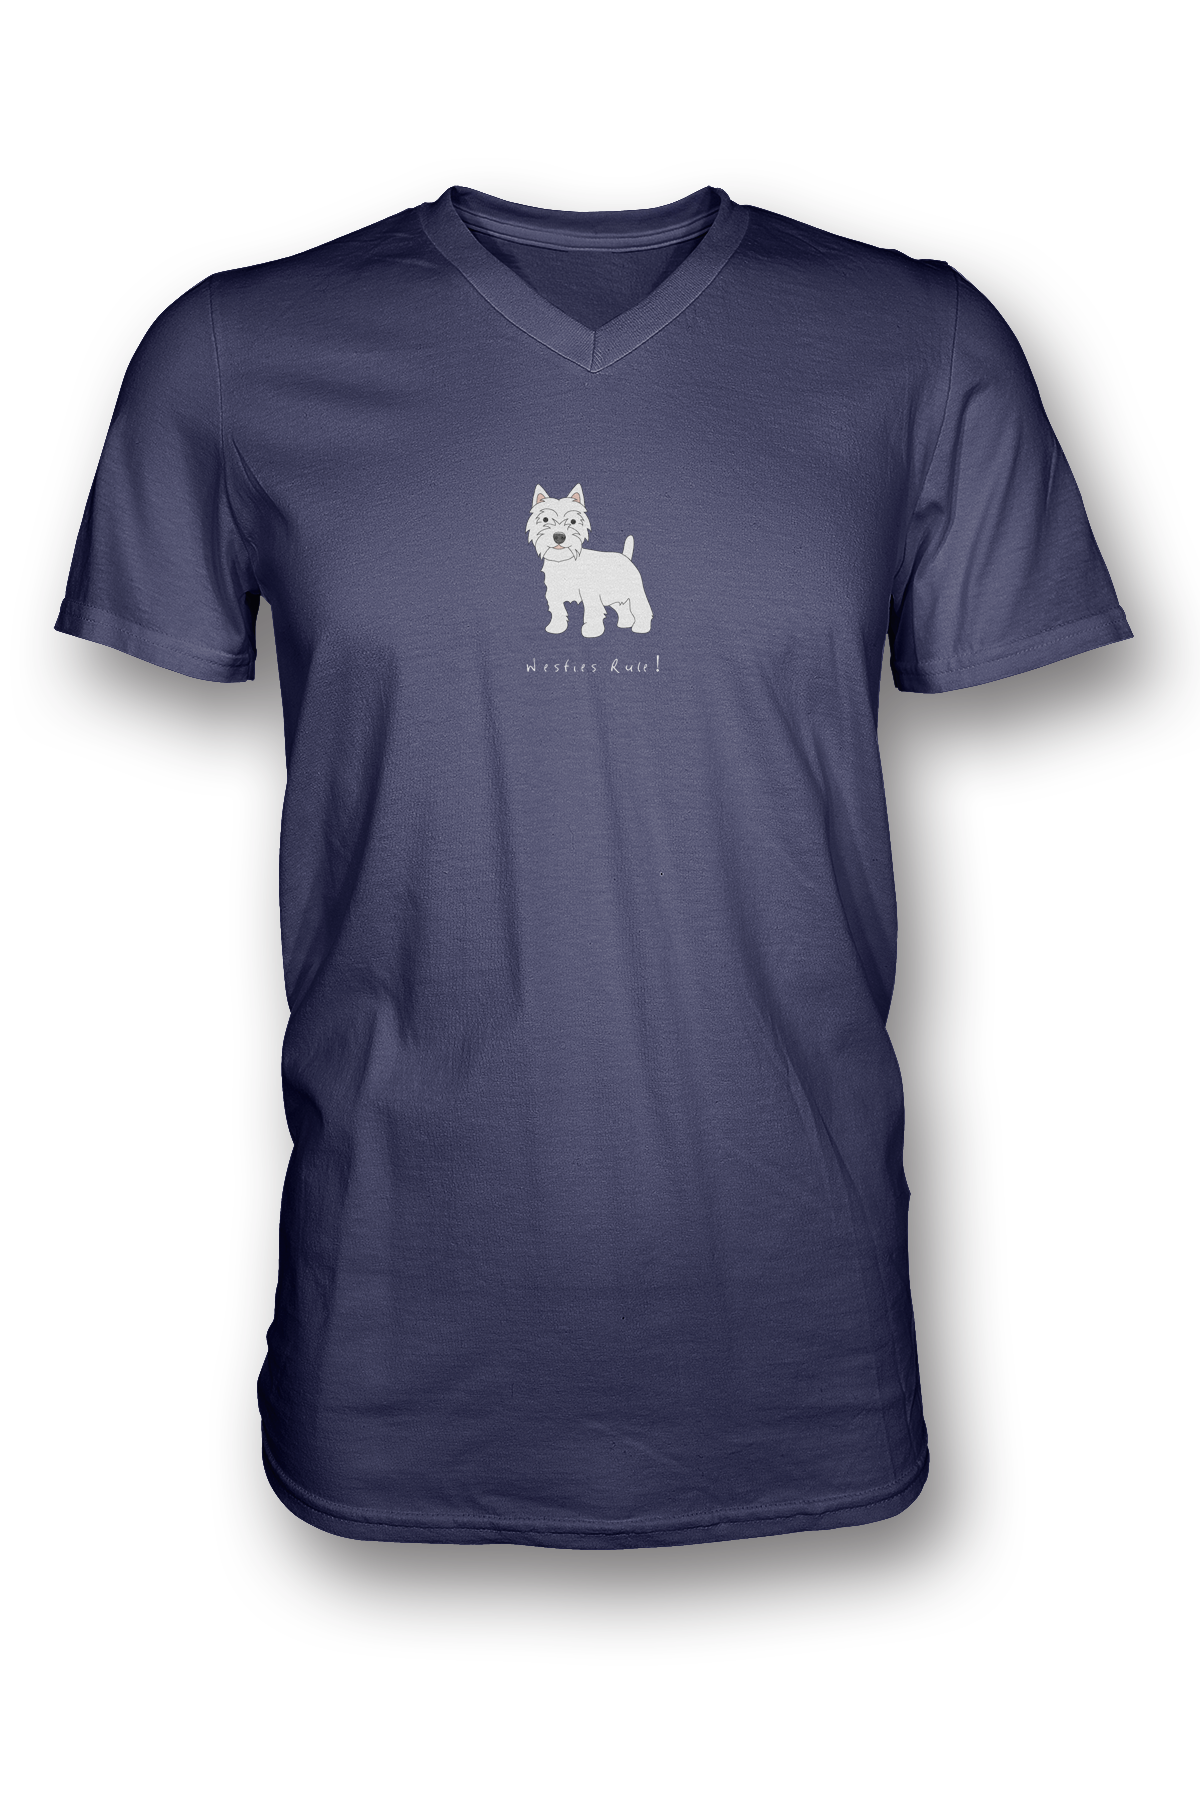 Mens V Neck T-Shirt - Westies Rule! Heather Blue